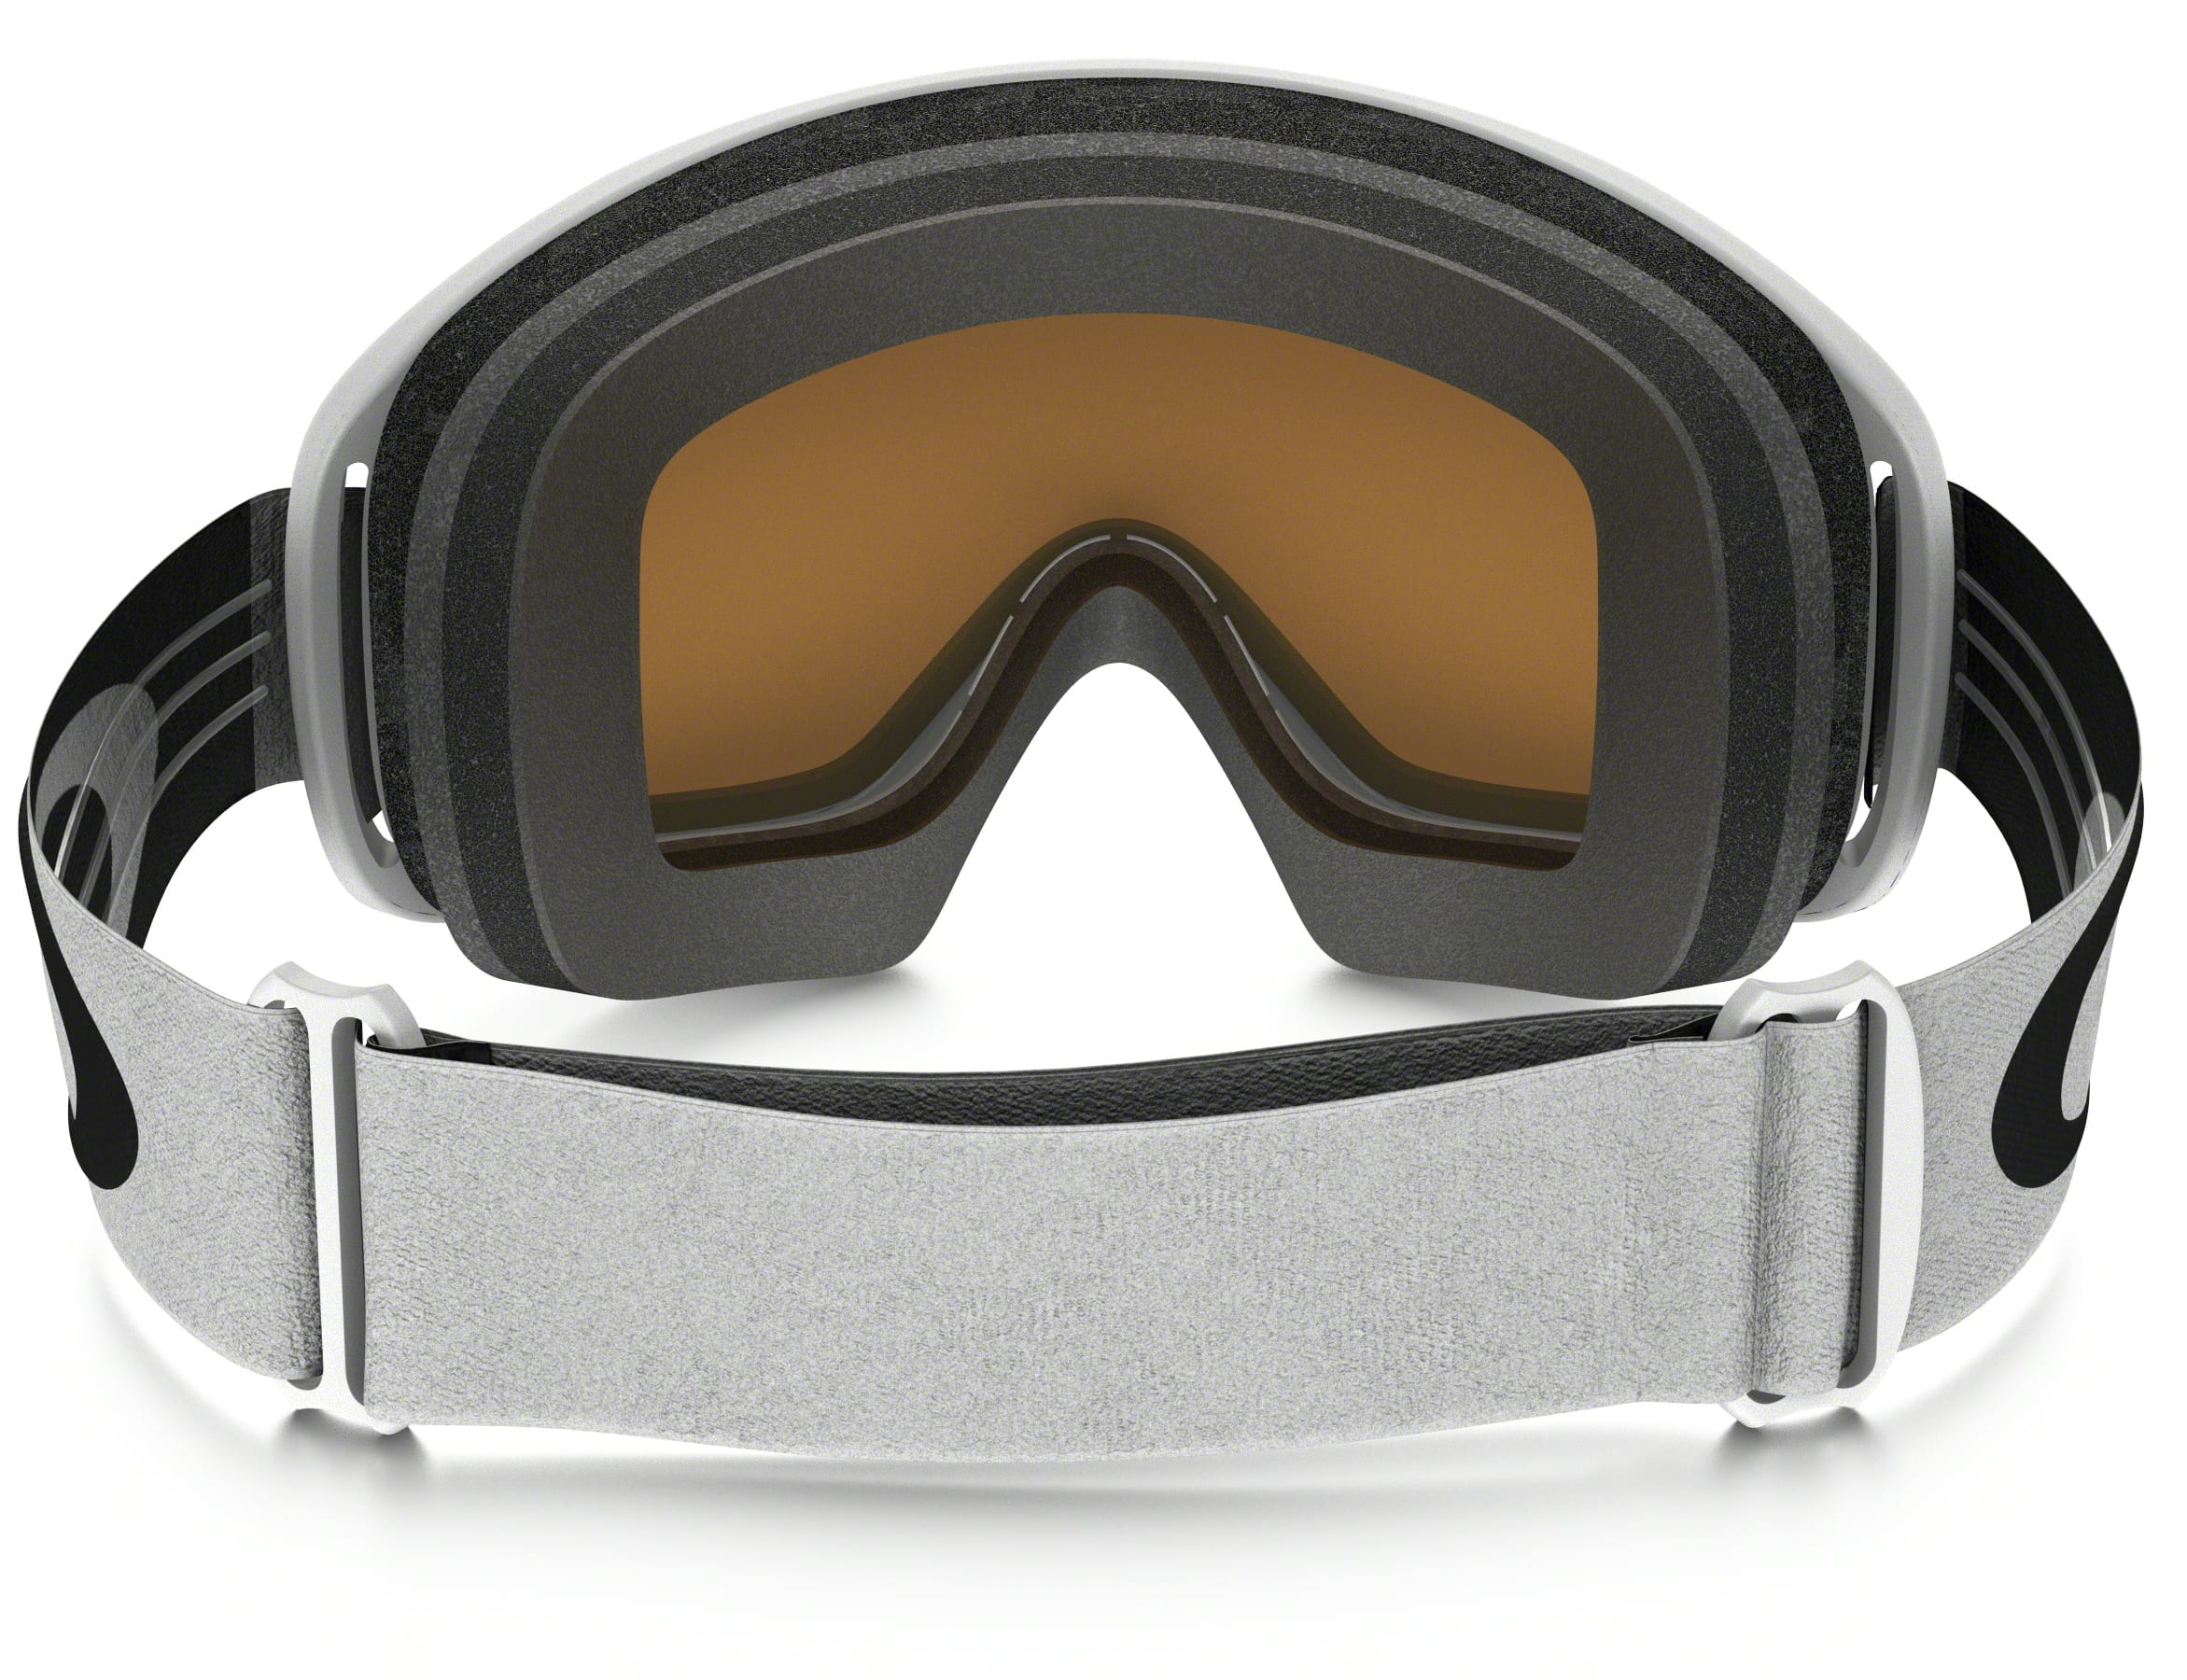 fd447f1545ab4 Oakley O Frame 2.0 XL (Asian Fit) Goggles - thumbnail 3